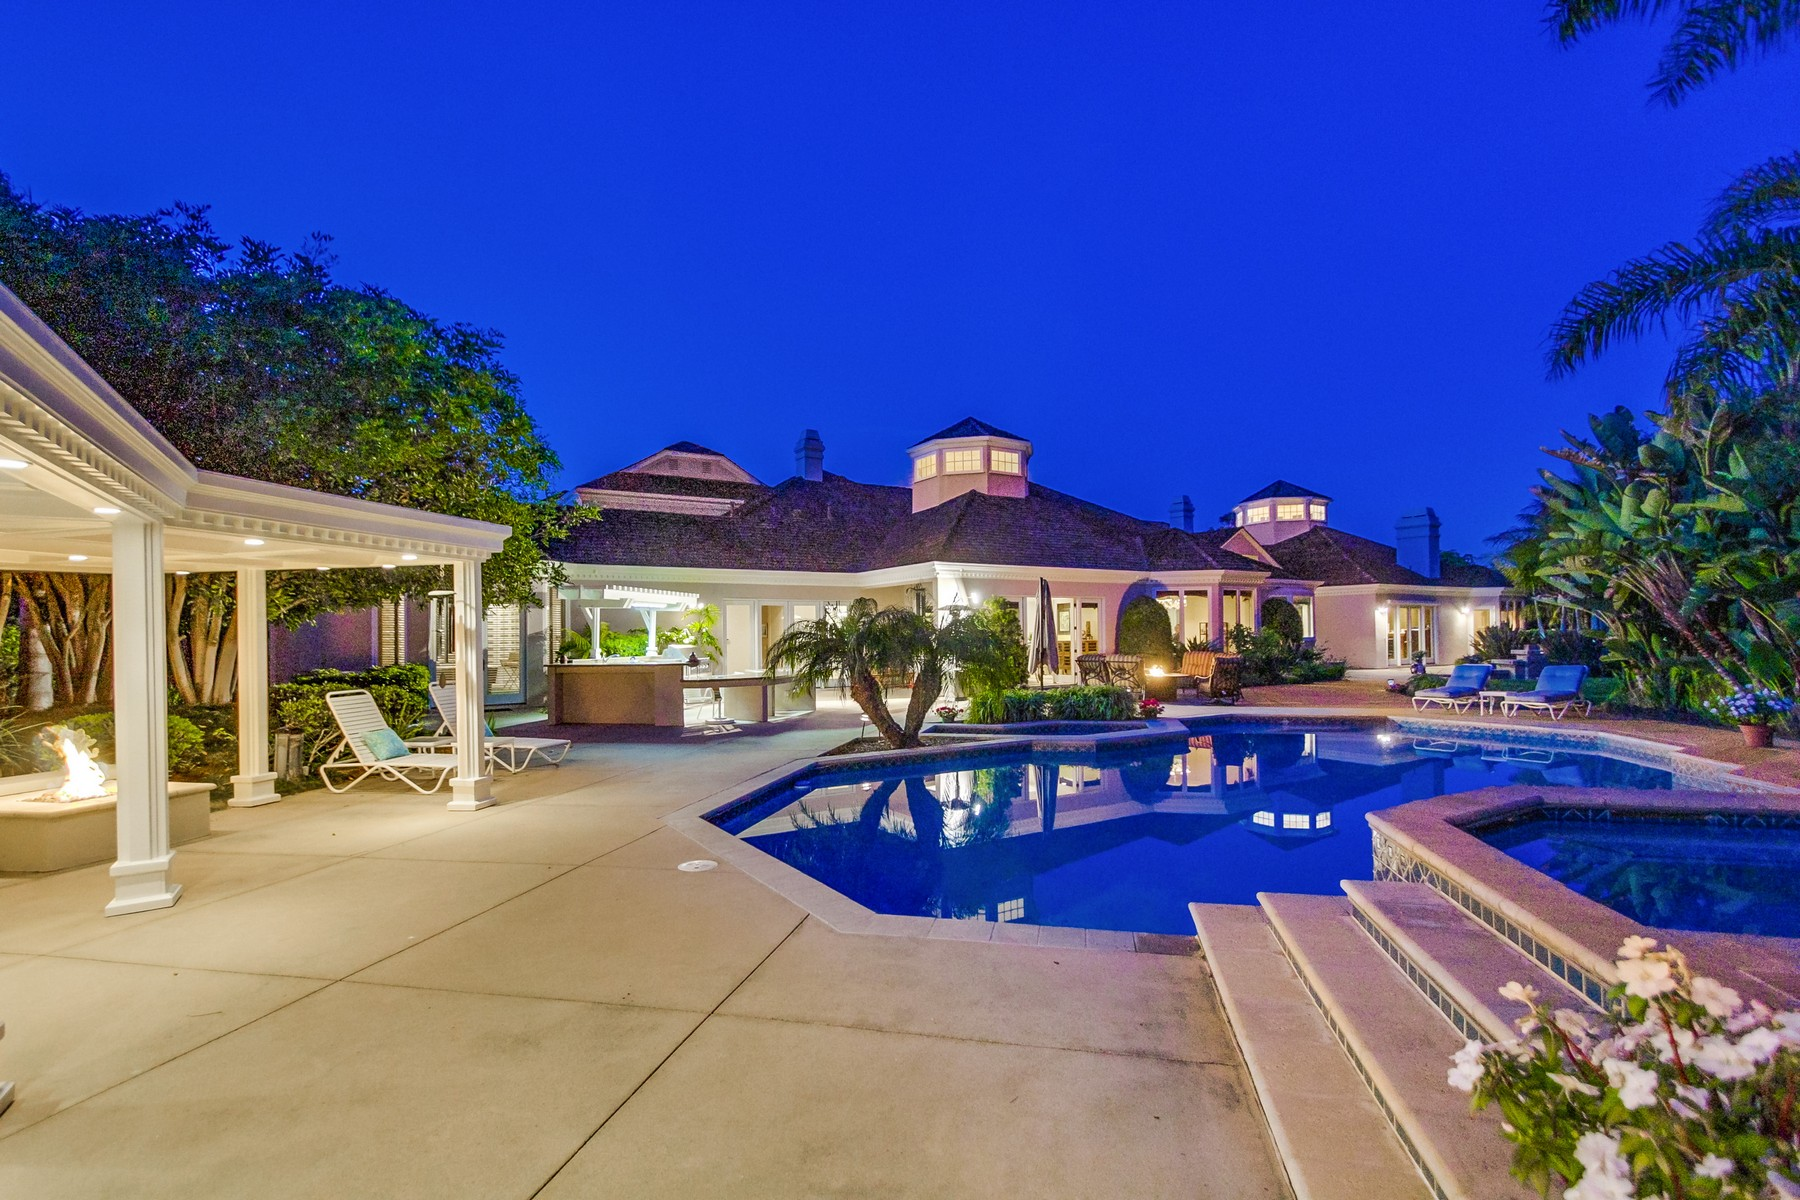 Additional photo for property listing at 9814 Black Gold Road  La Jolla, Californie 92037 États-Unis